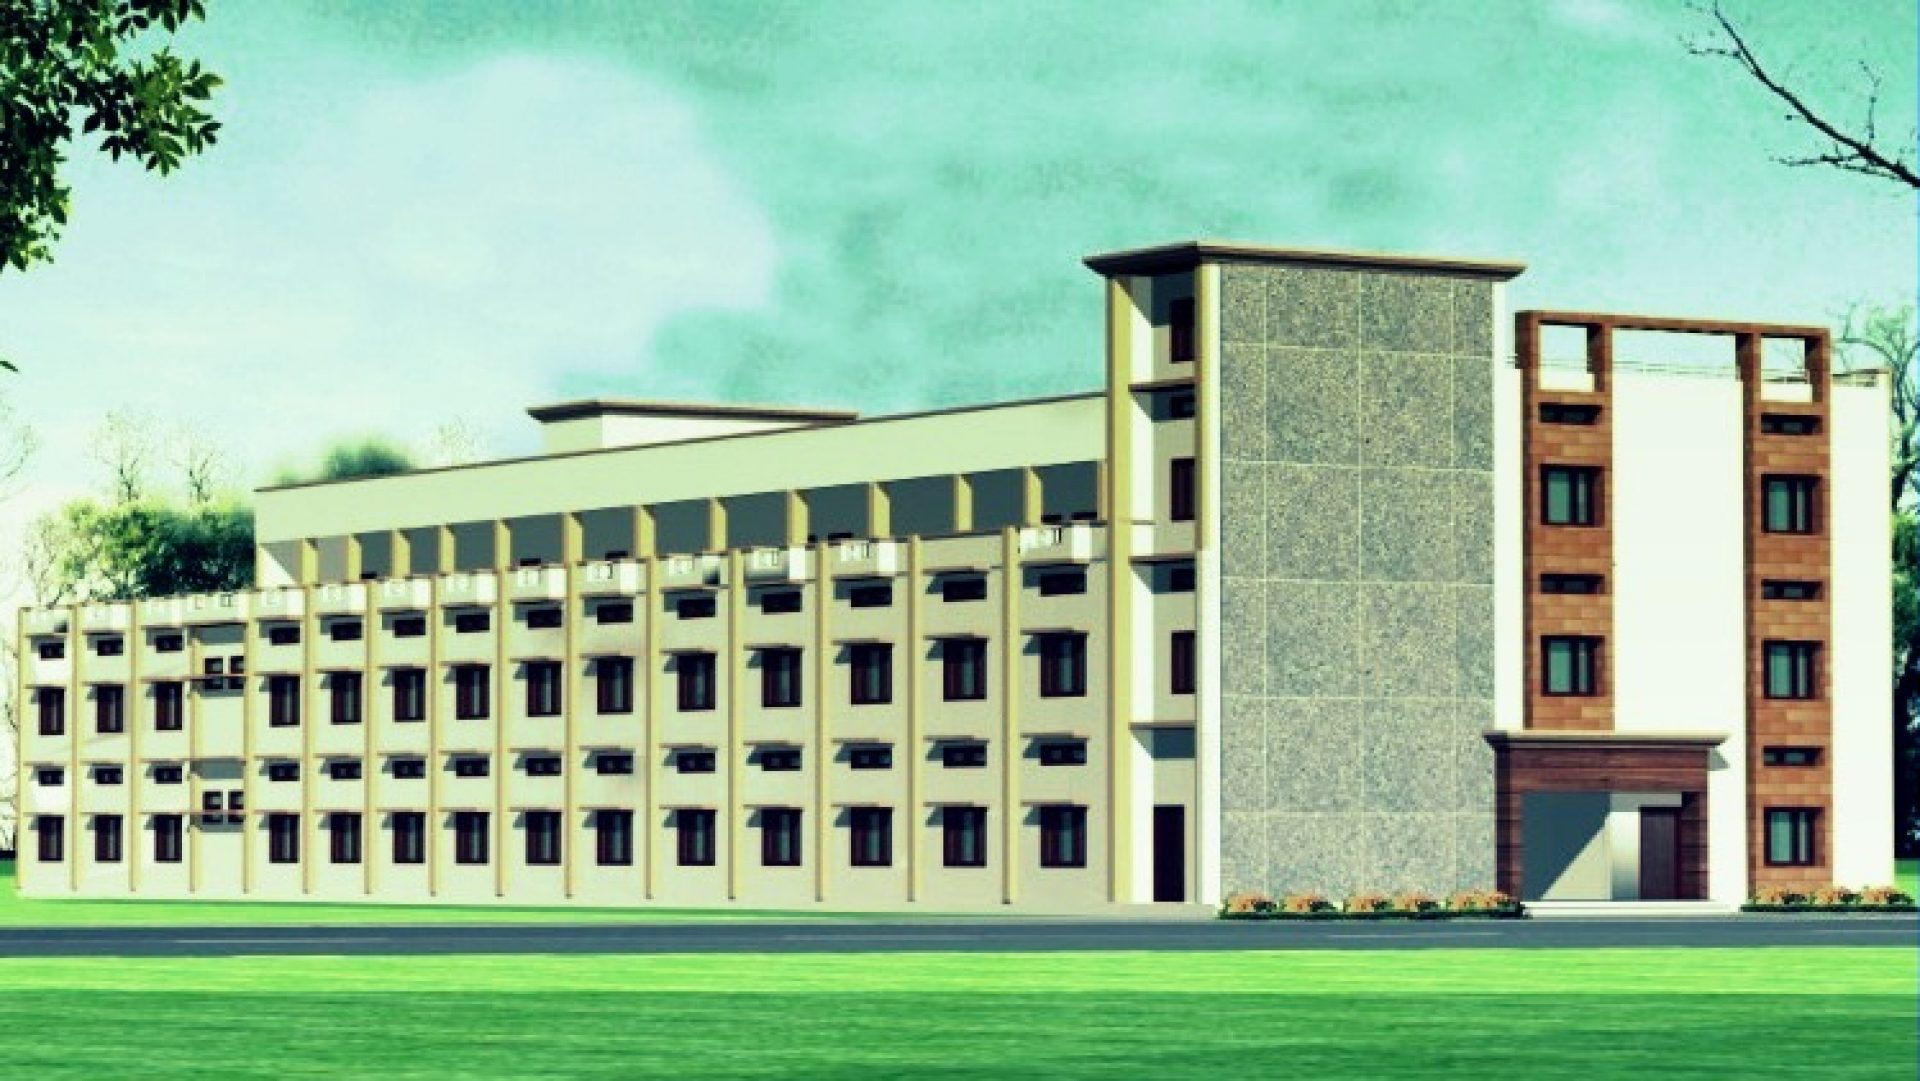 Shri Shiv Mangal Singh Memorial Degree College